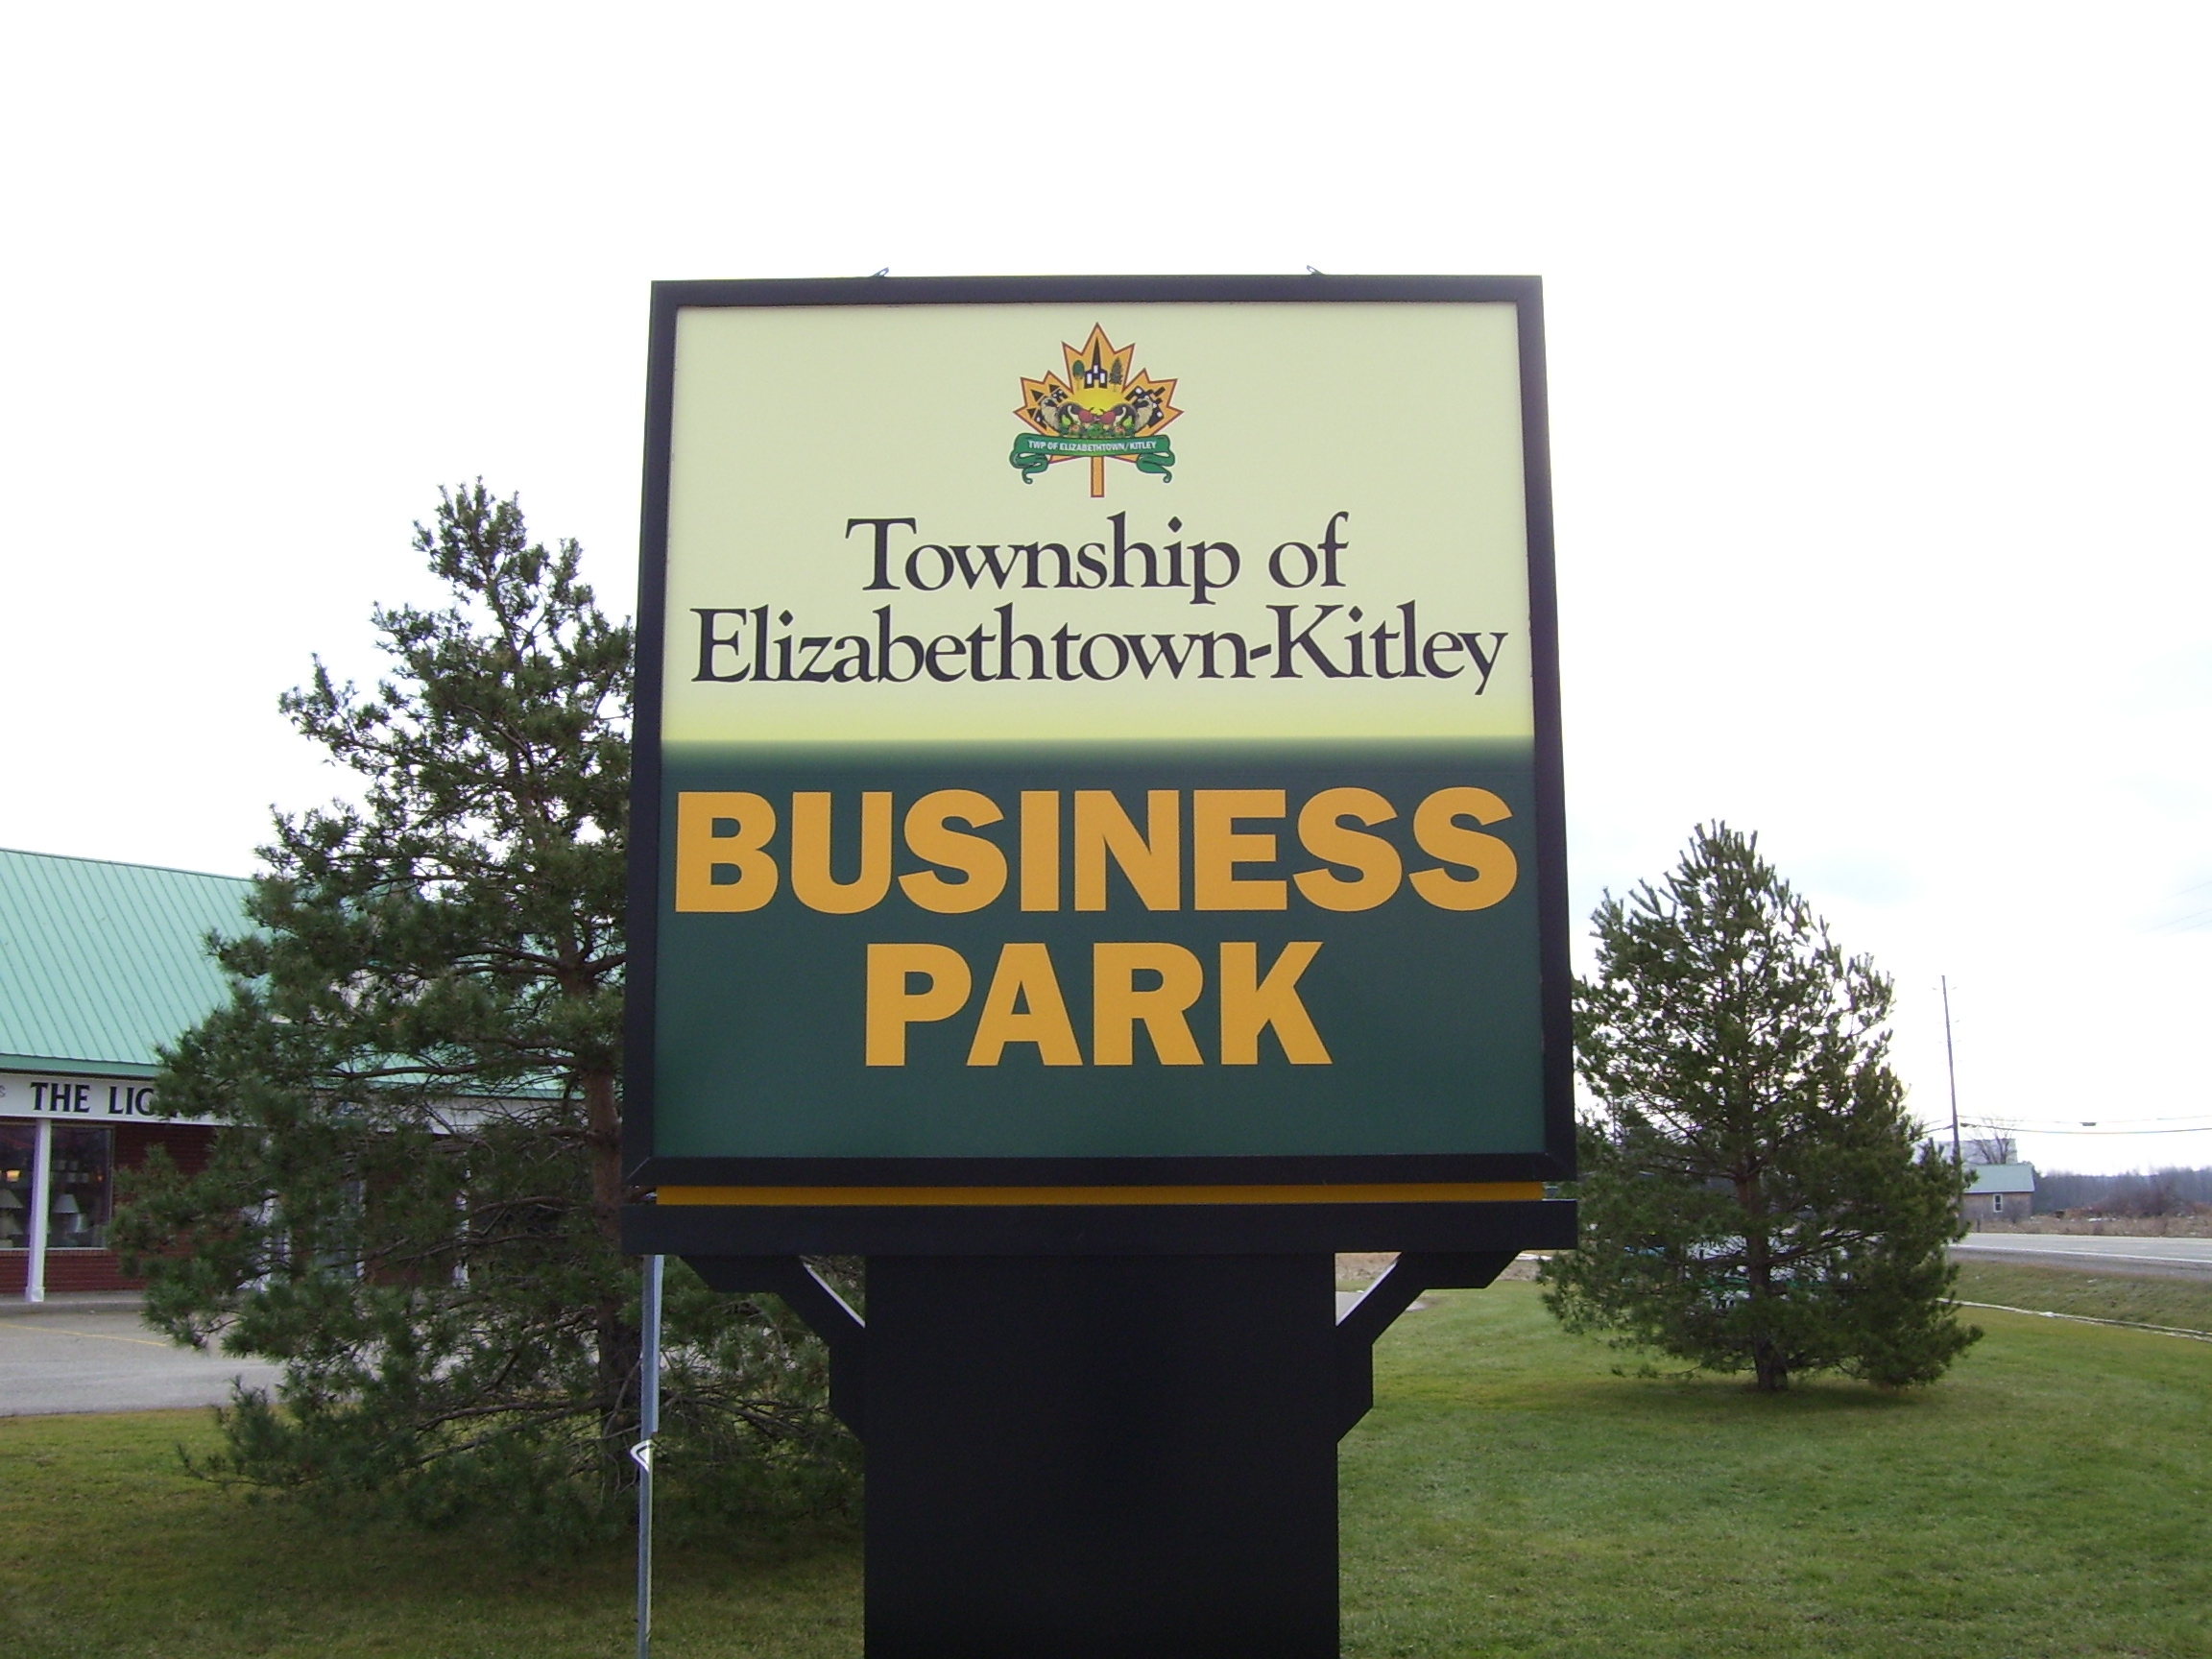 Picture of Elizabethtown-Kitley Business Park sign